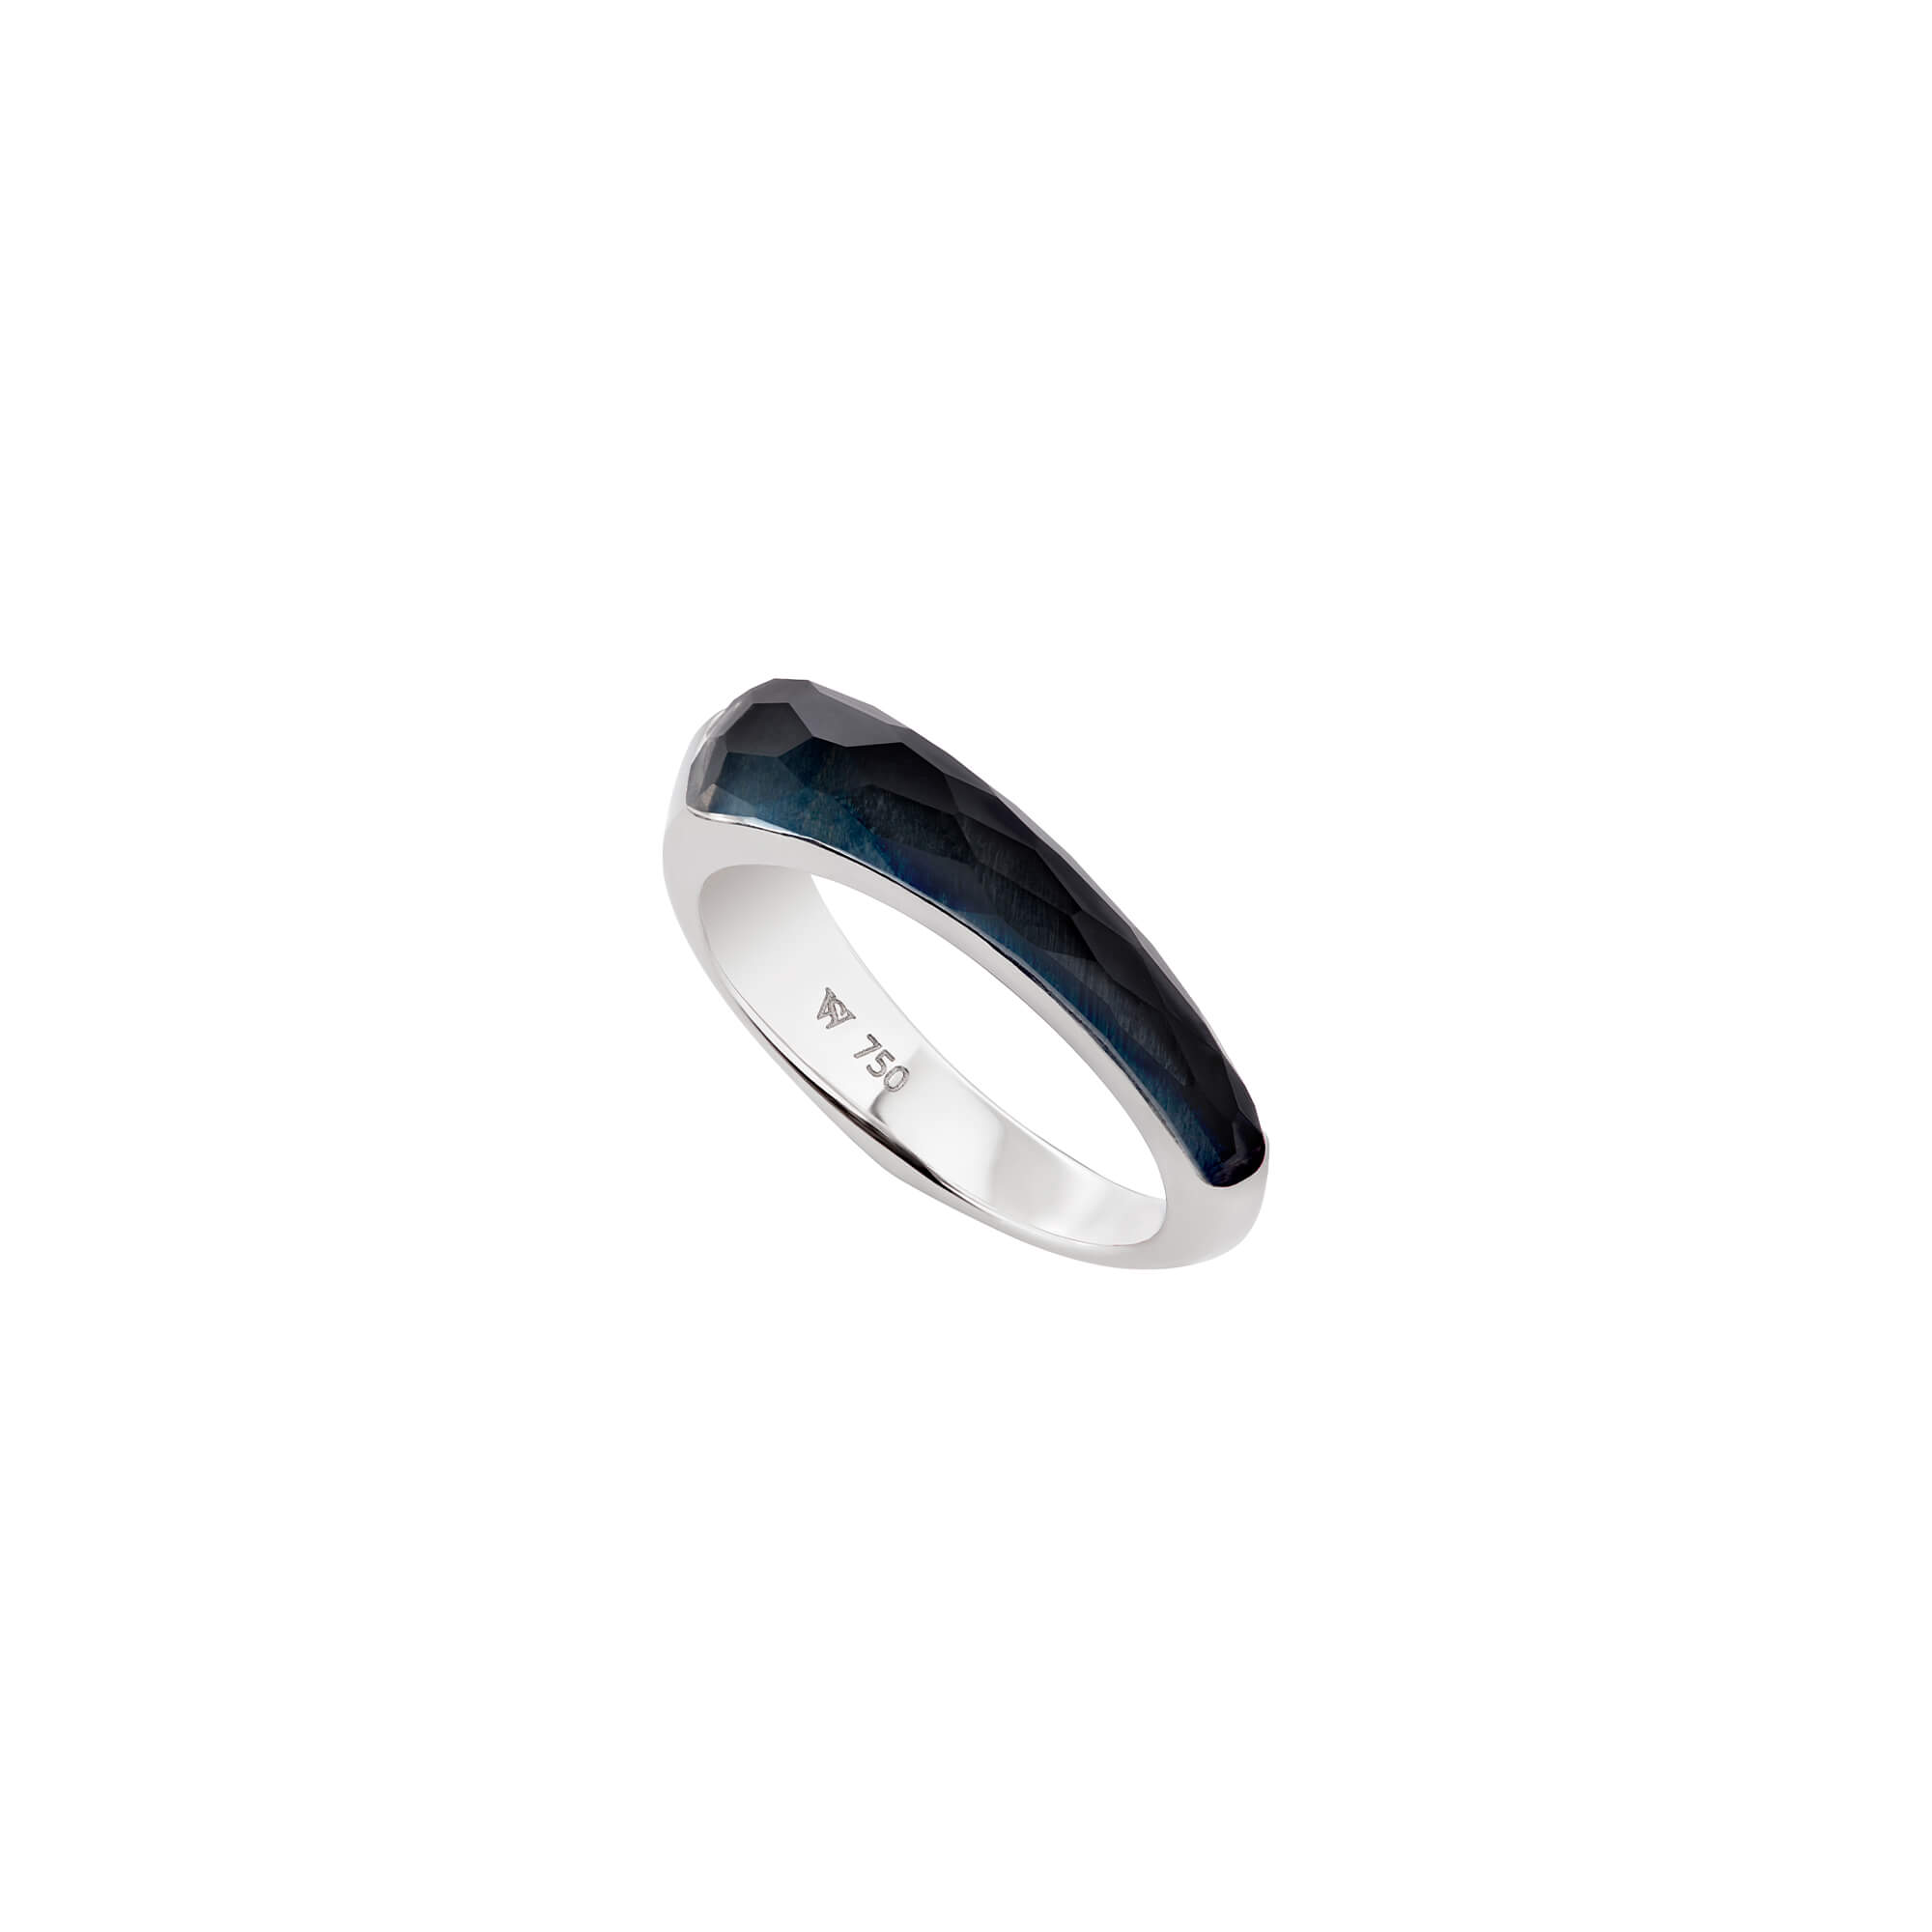 Falcon's Eye Crystal Haze Slimline Shard Stack Ring | CH₂